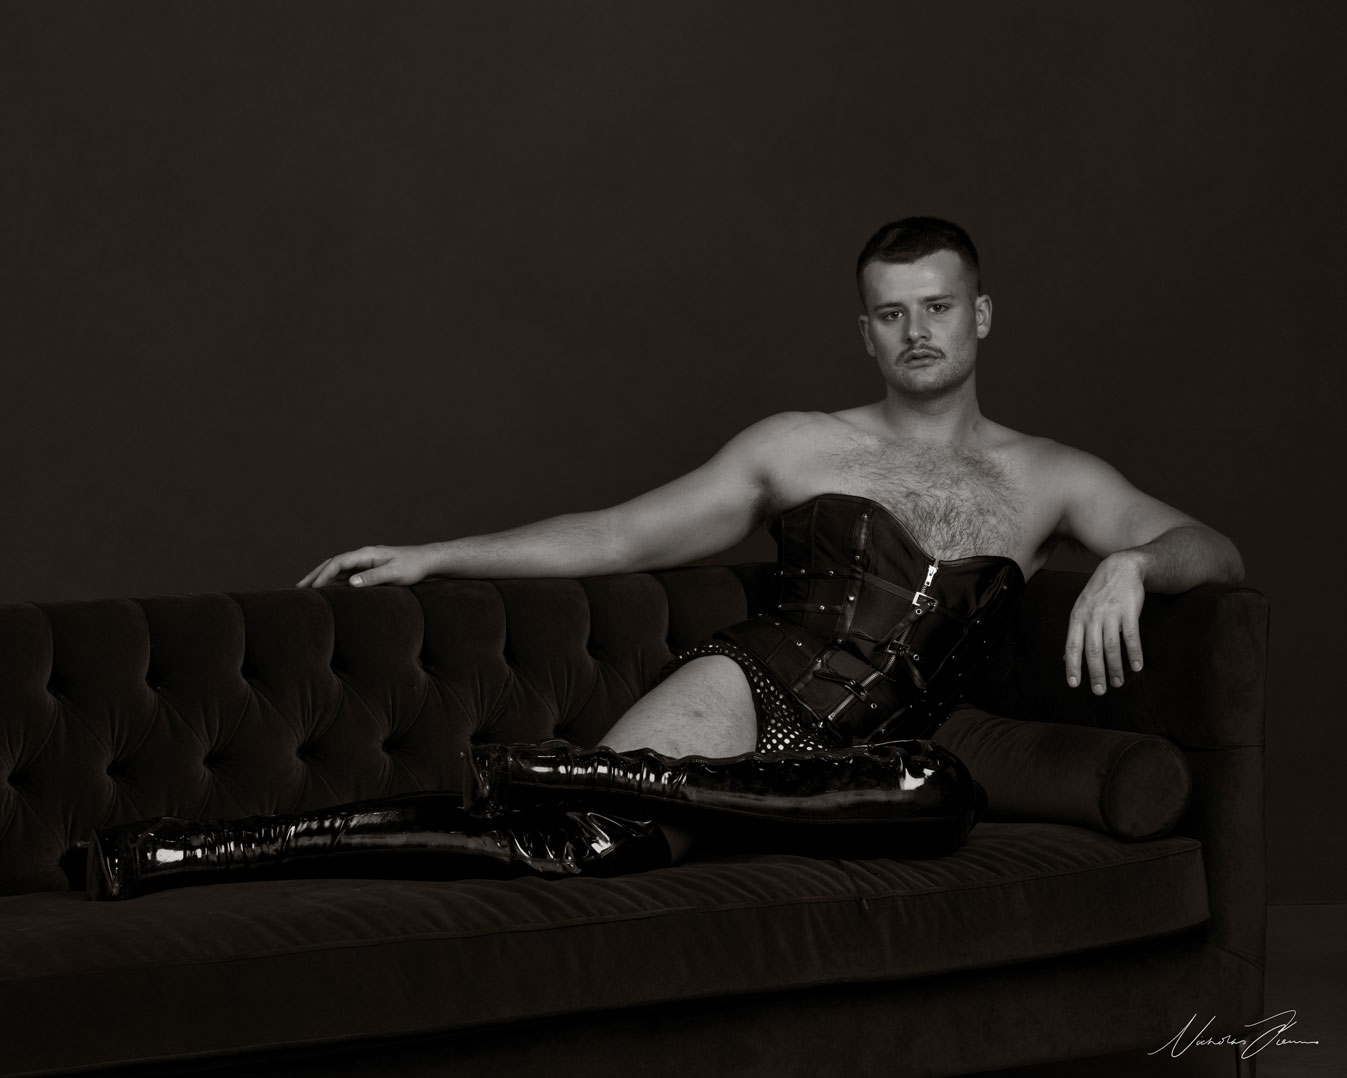 Black and white portrait of performer, writer, and theatre maker Tom Crotty, lounging on sofa wearing a corset and high boots.